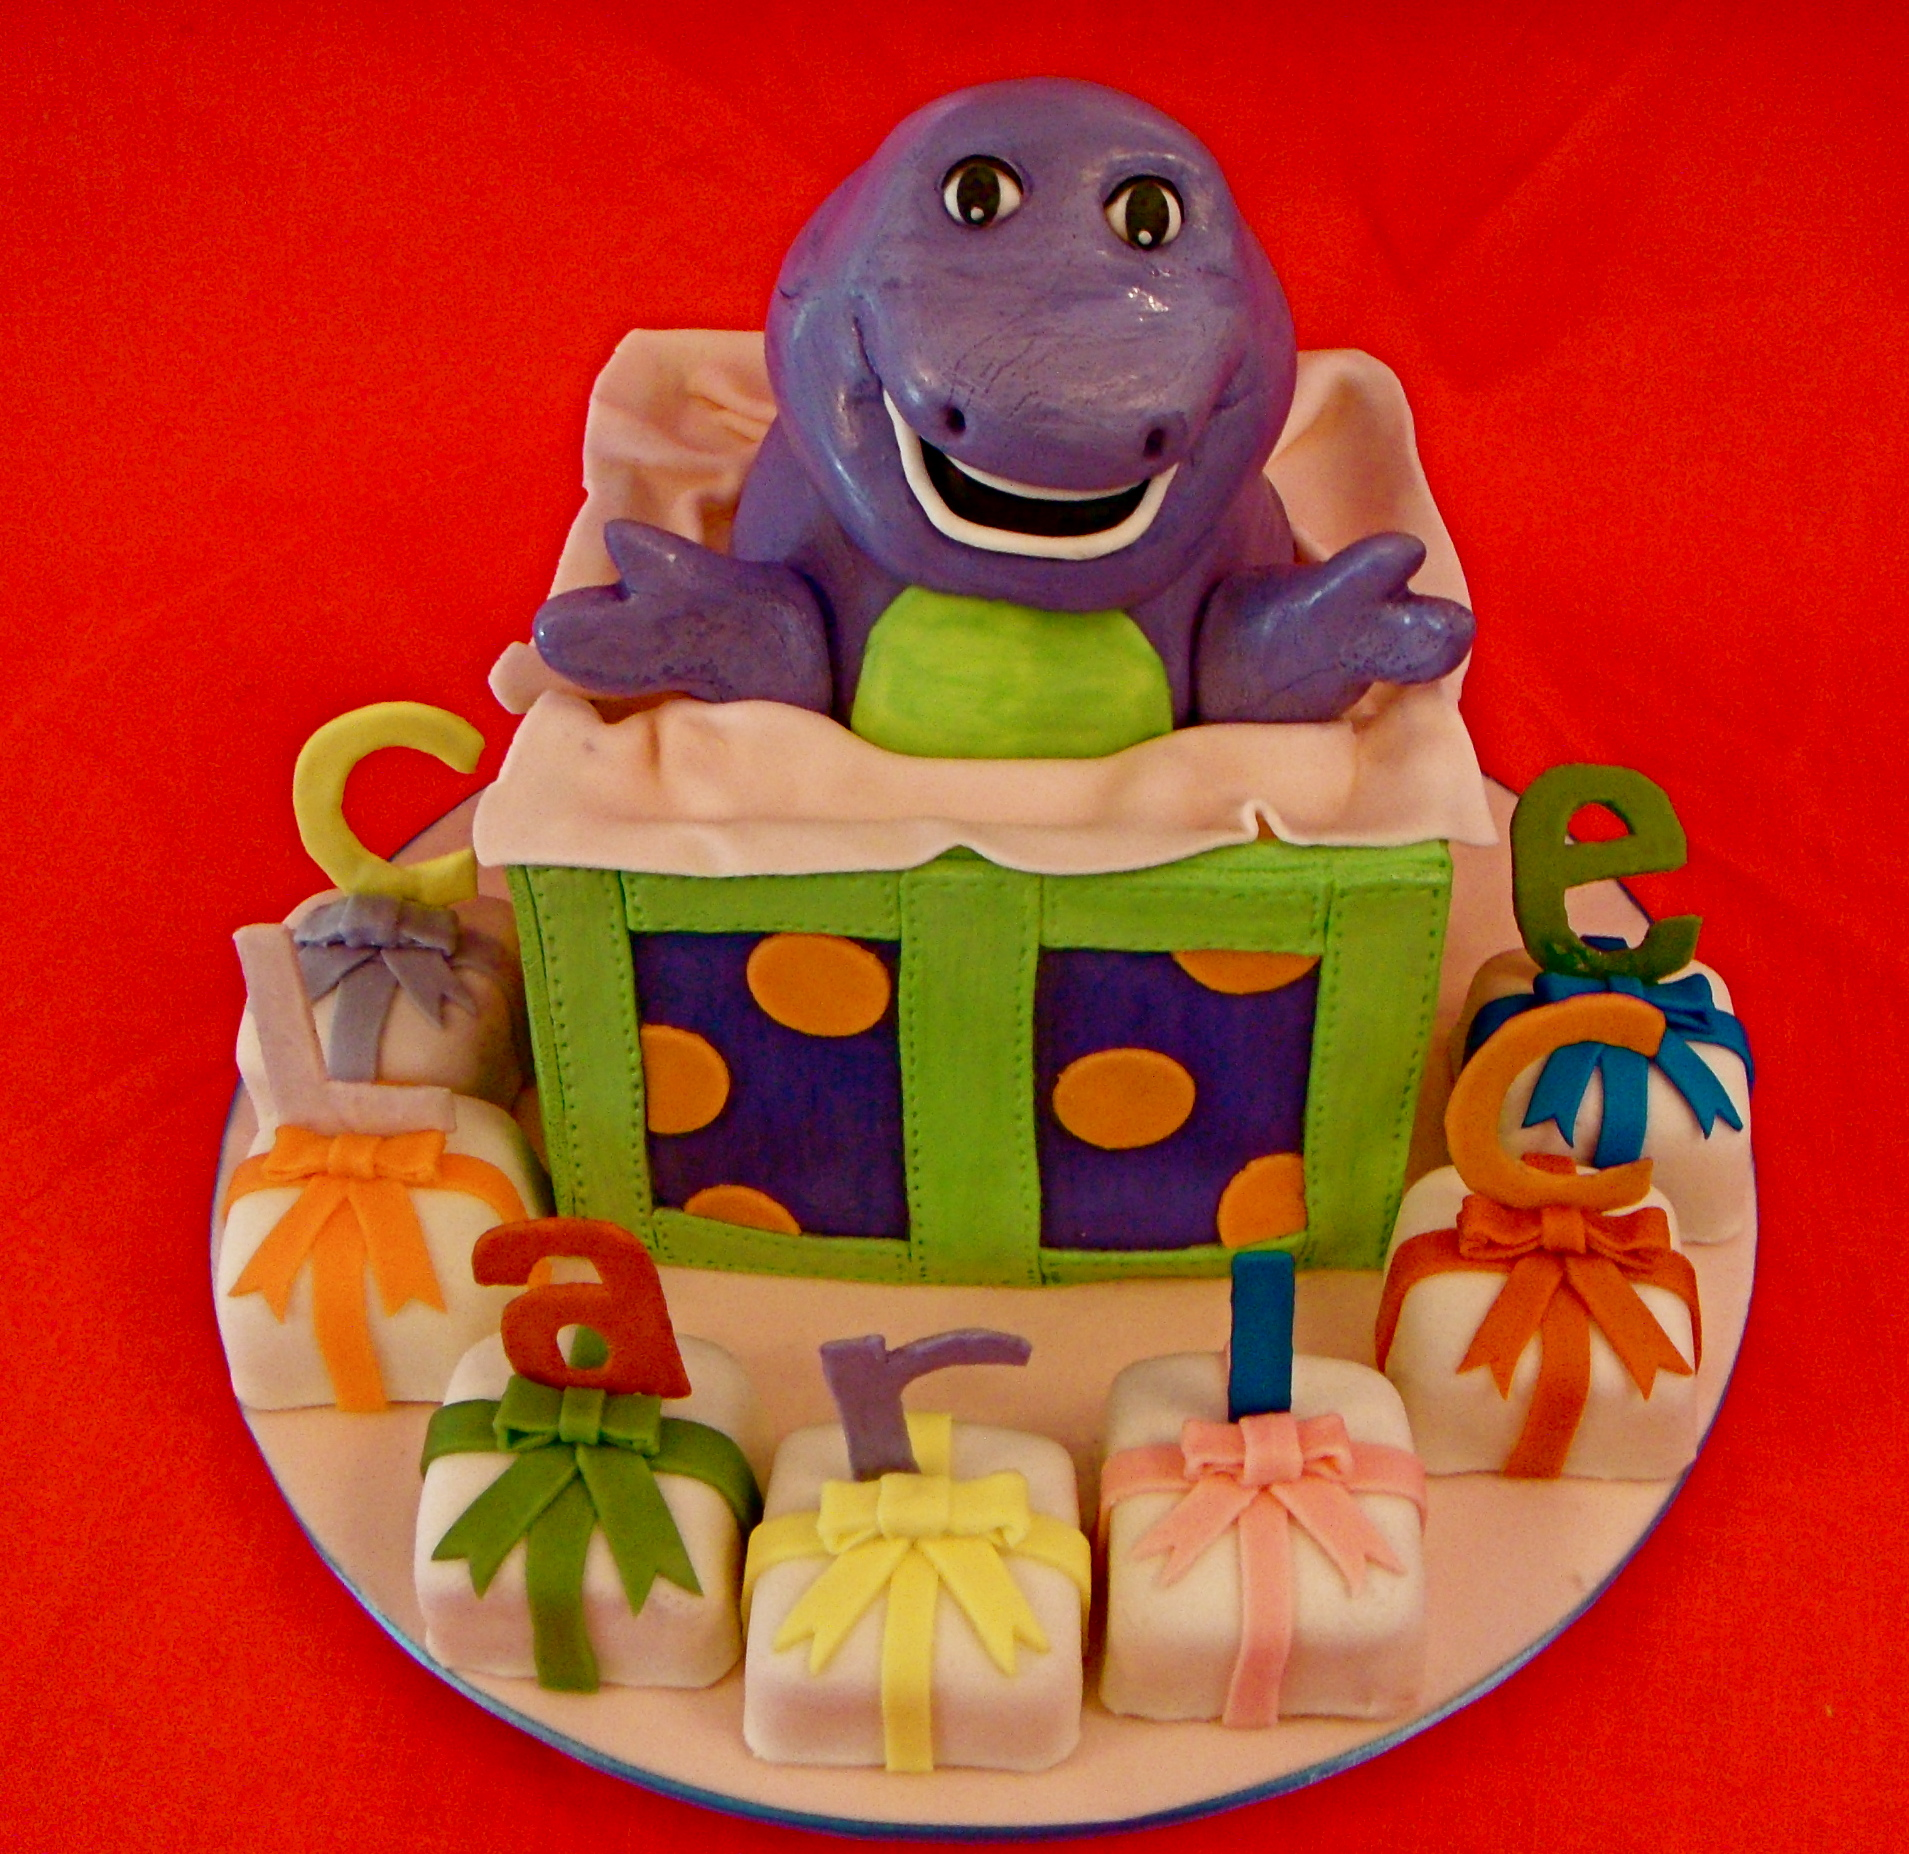 Barney And Friends Cake Designs